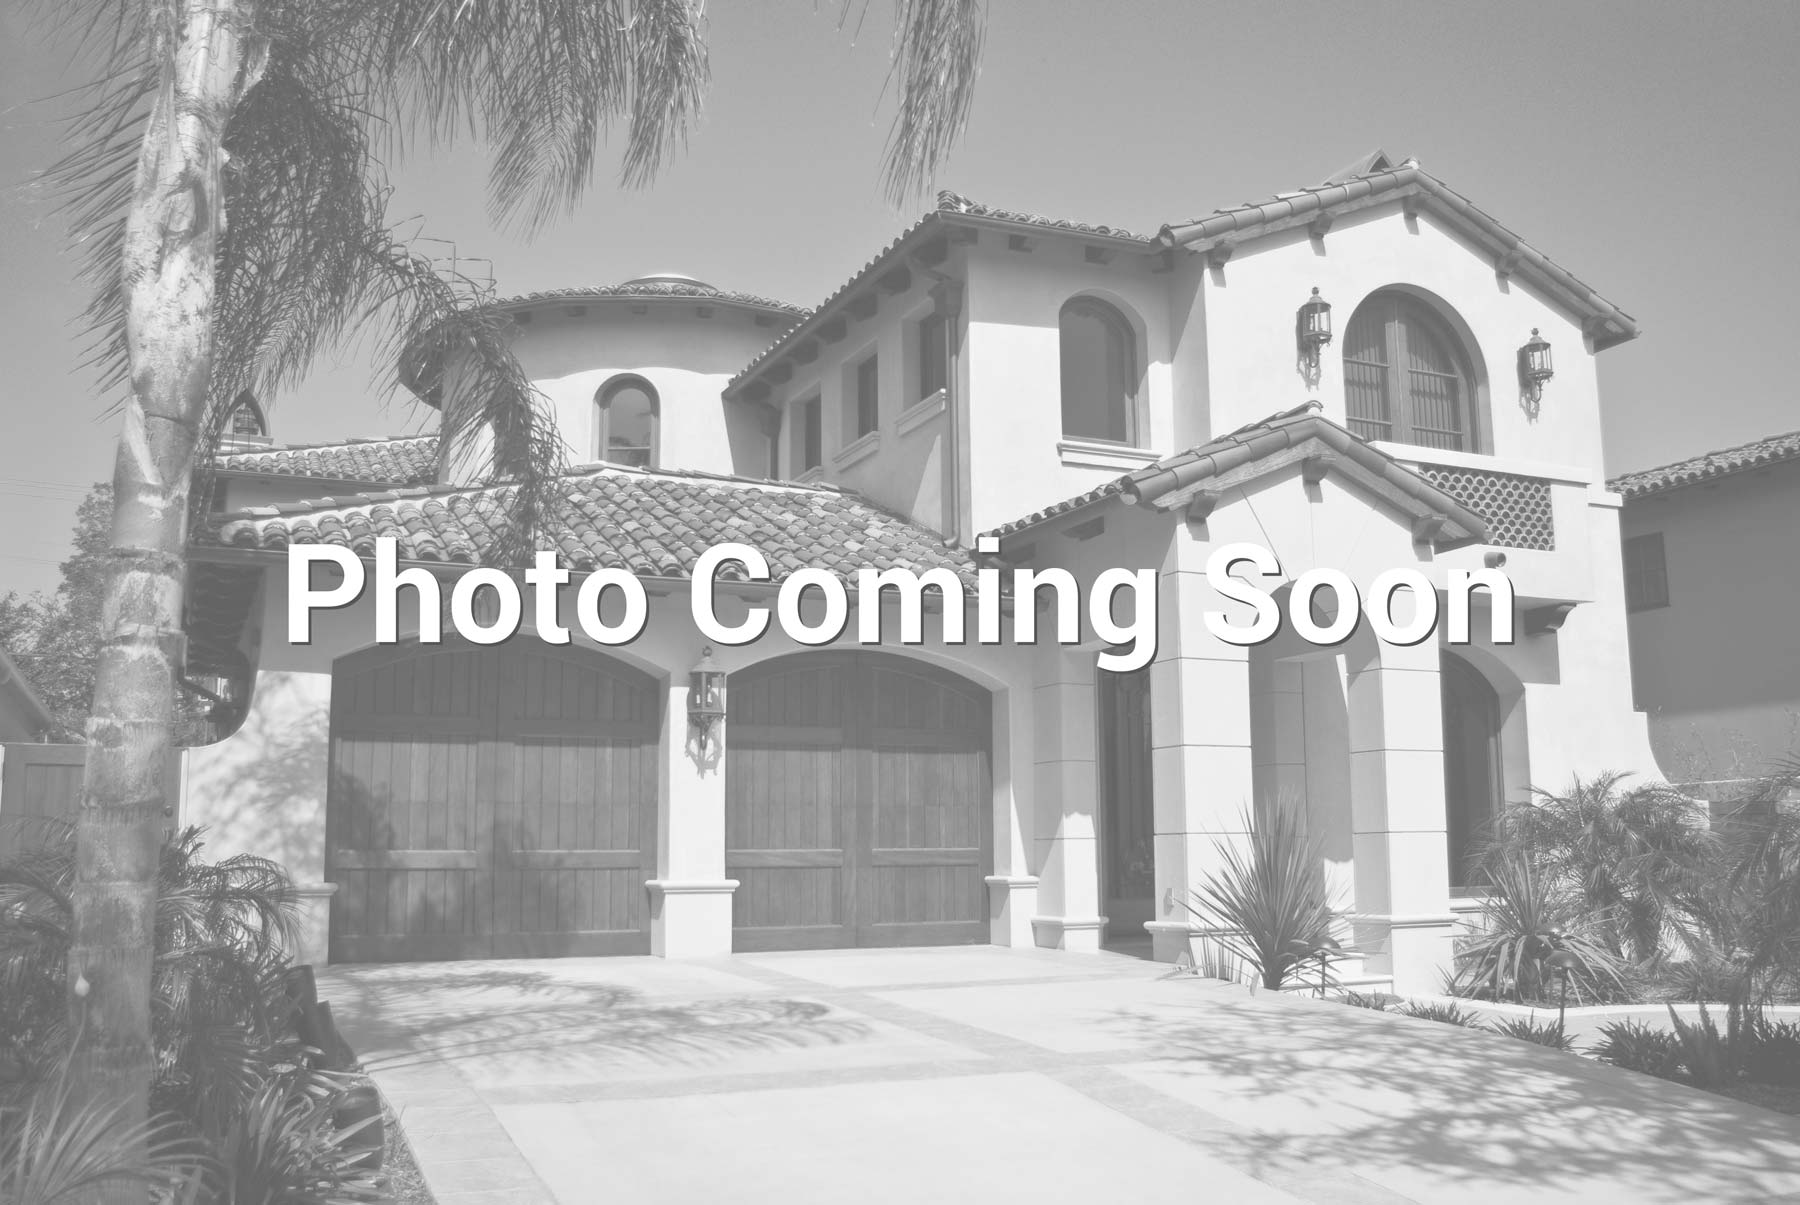 $1,200,000 - 4Br/3Ba - Home for Sale in Desert Ridge Lot 29, Phoenix